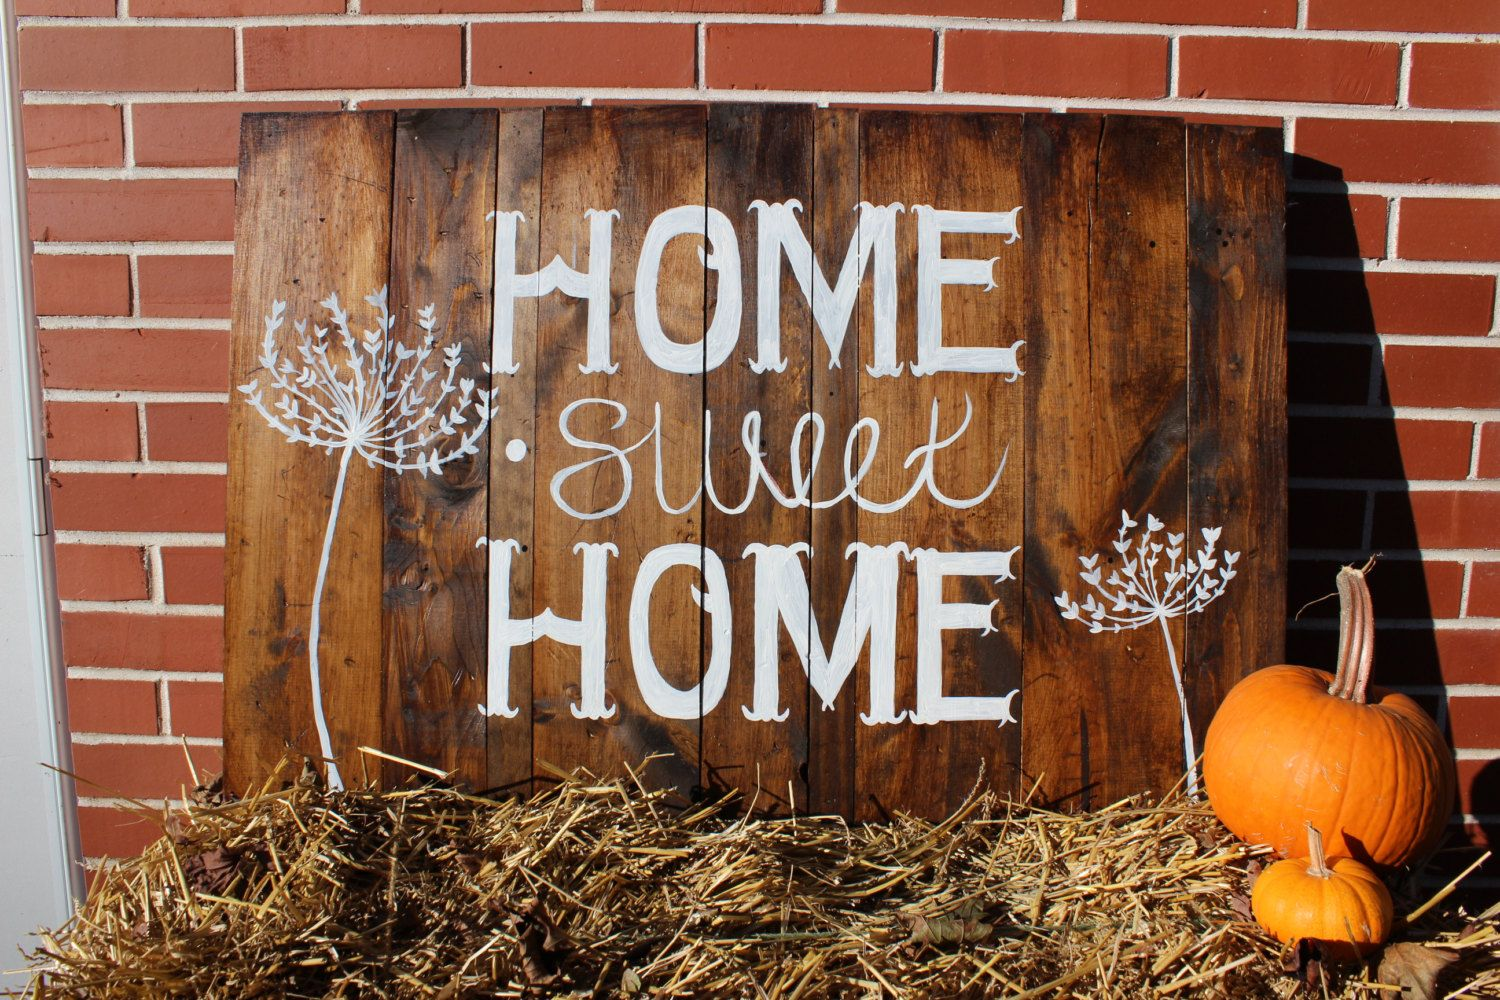 Home Sweet Home wood pallet sign | Wood pallet signs ...